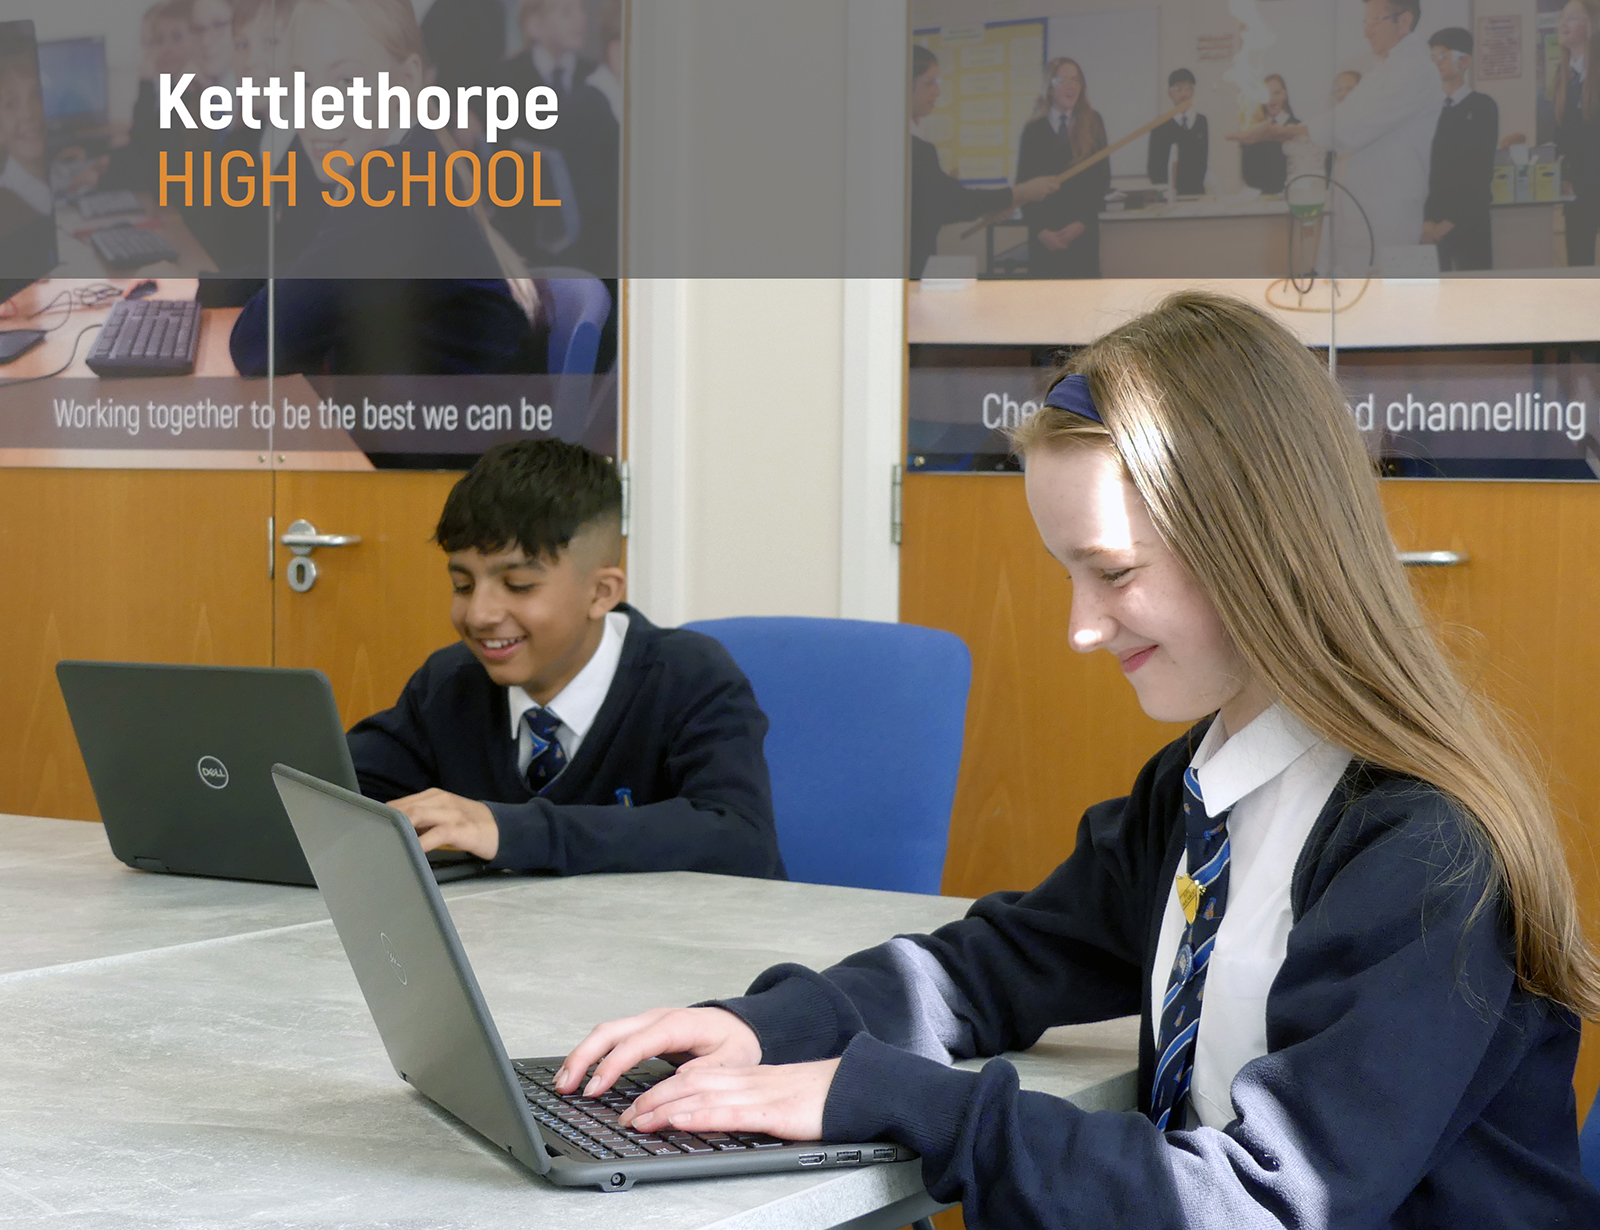 Pupils demonstrate the brand new laptops donated to our school by the local ASDA store